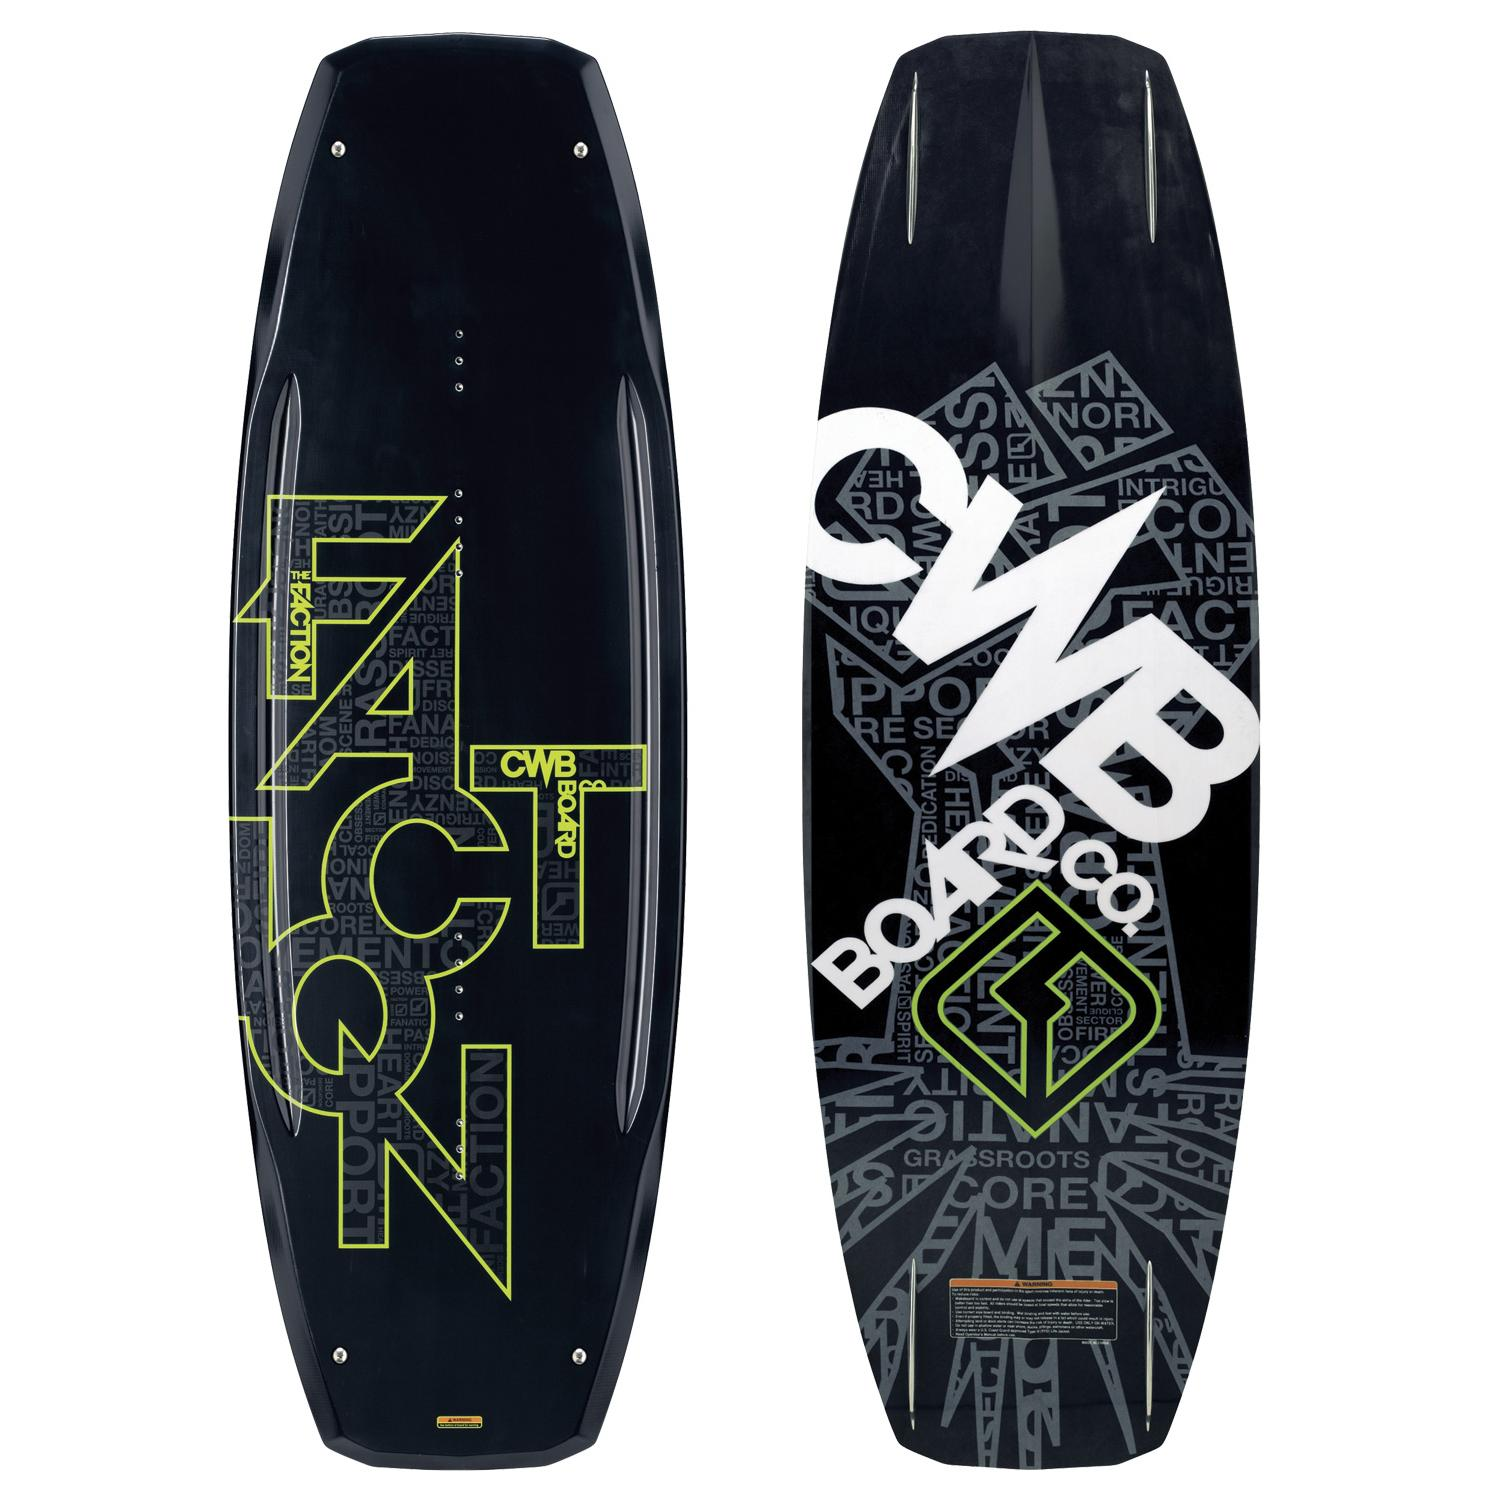 Cwb Faction Wakeboard Faction Bindings 2010 Evo Outlet